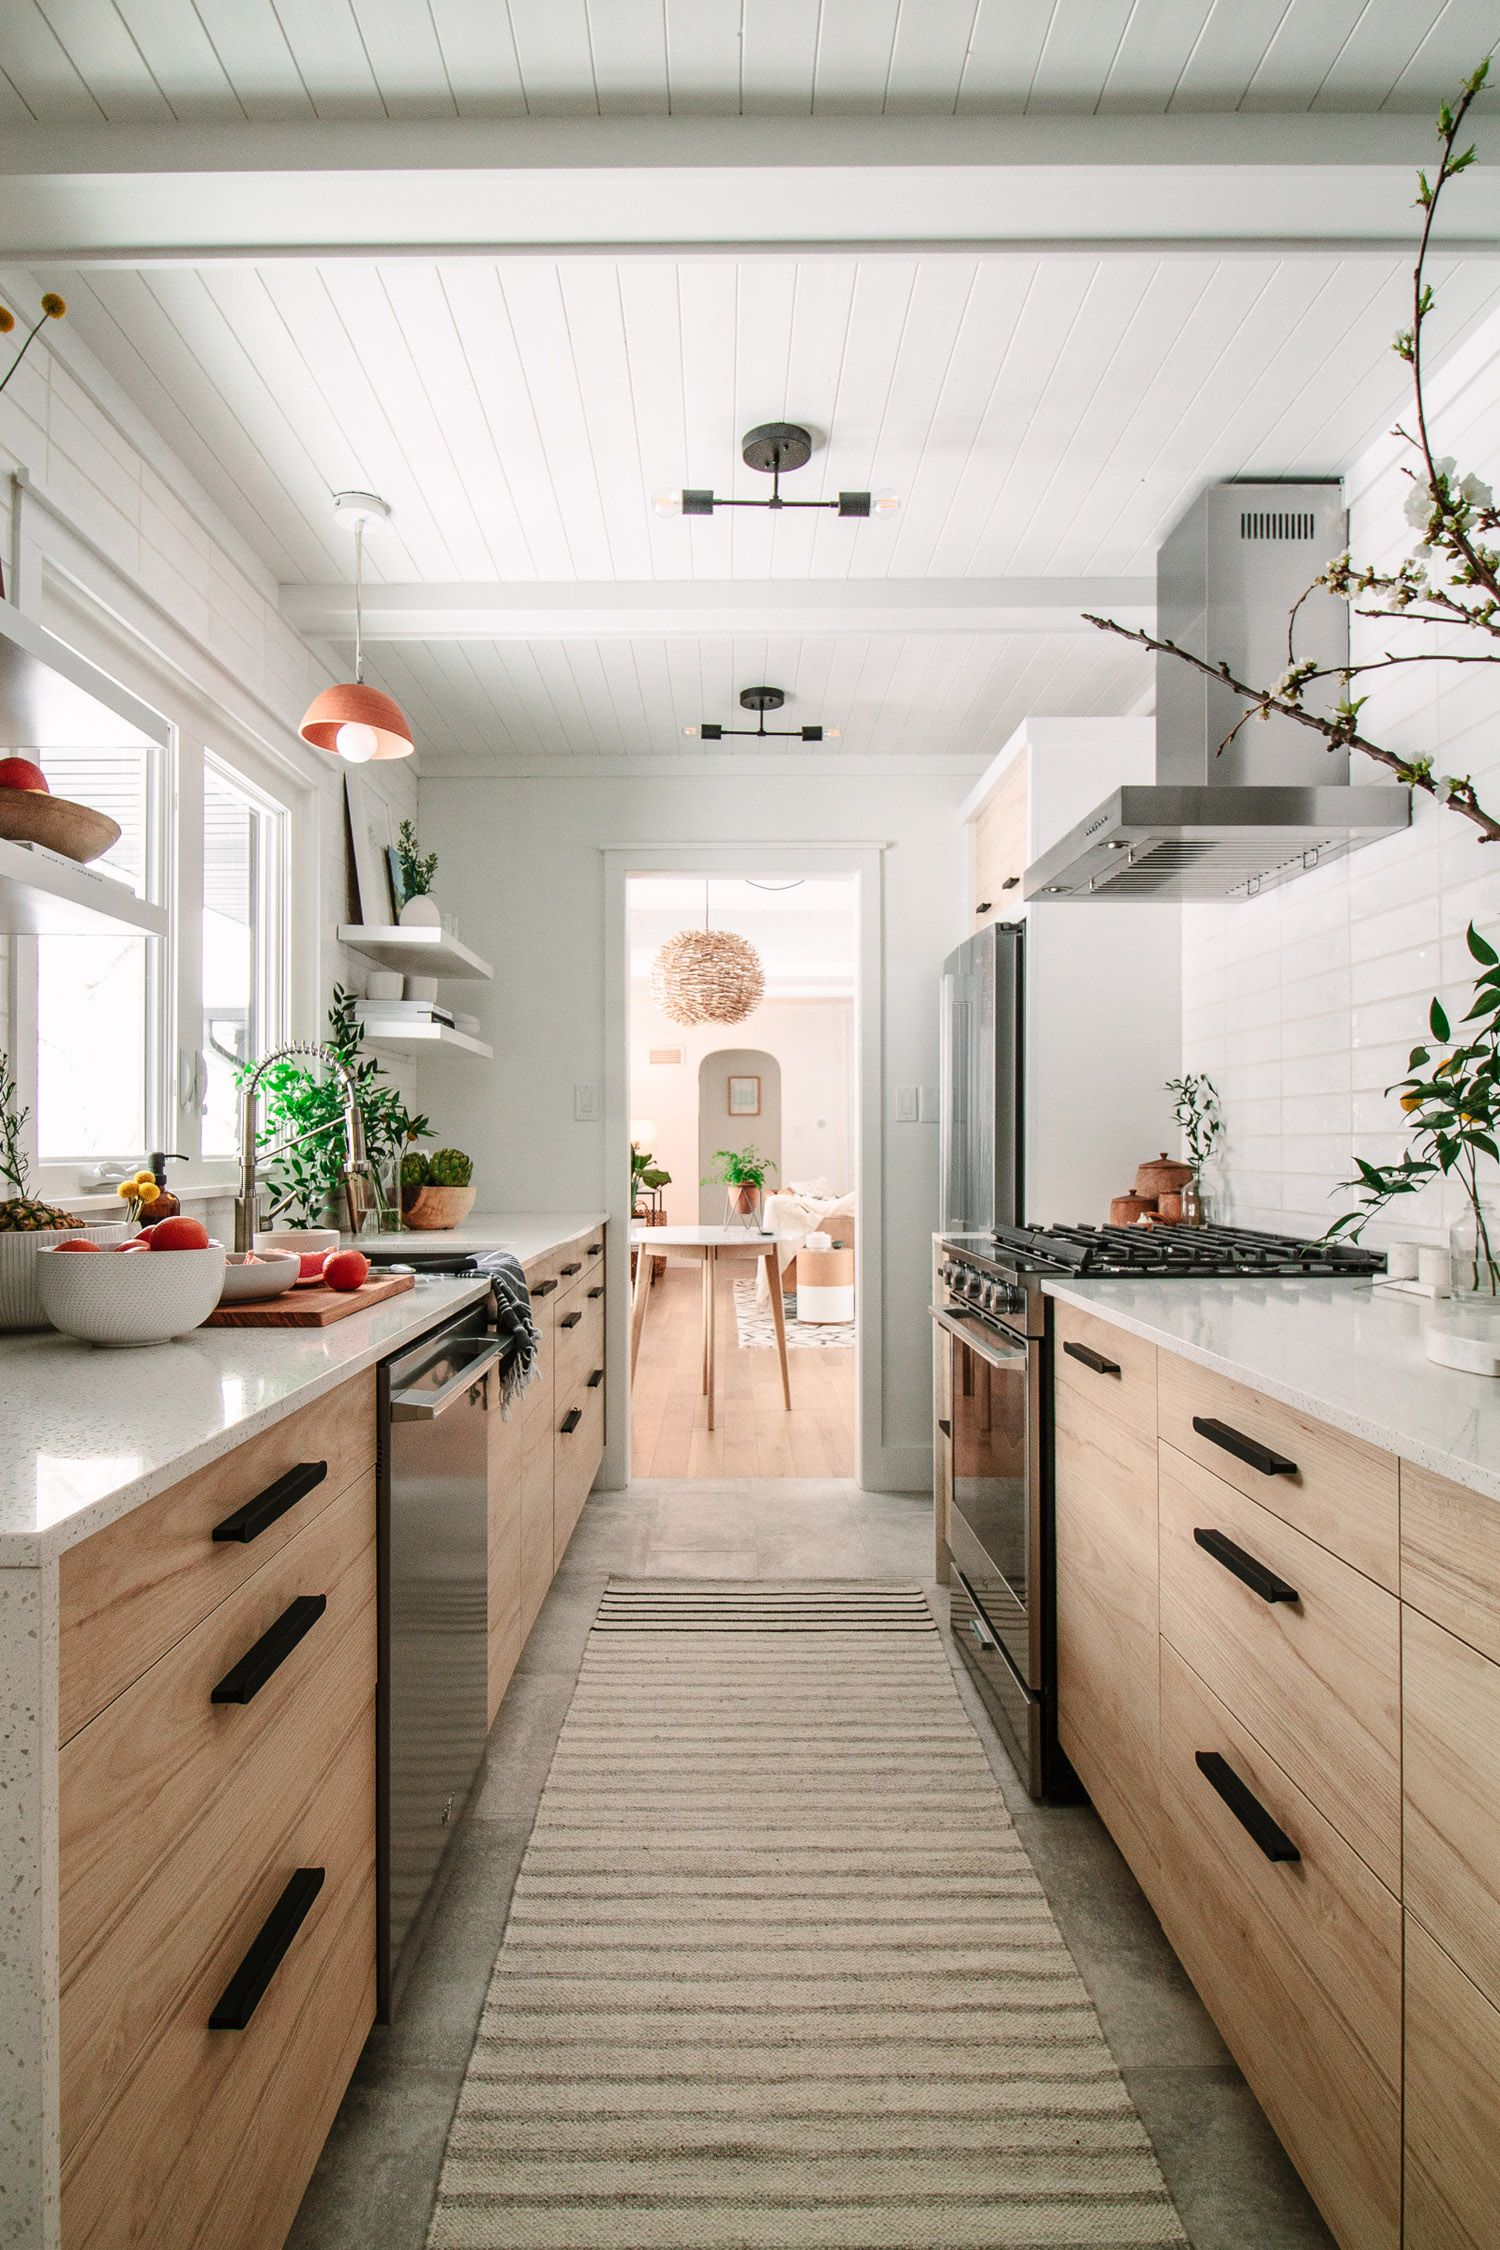 A Drab Galley Kitchen Gets A Modern Transformation At The Midwest Malibu Cottage - Front + Main